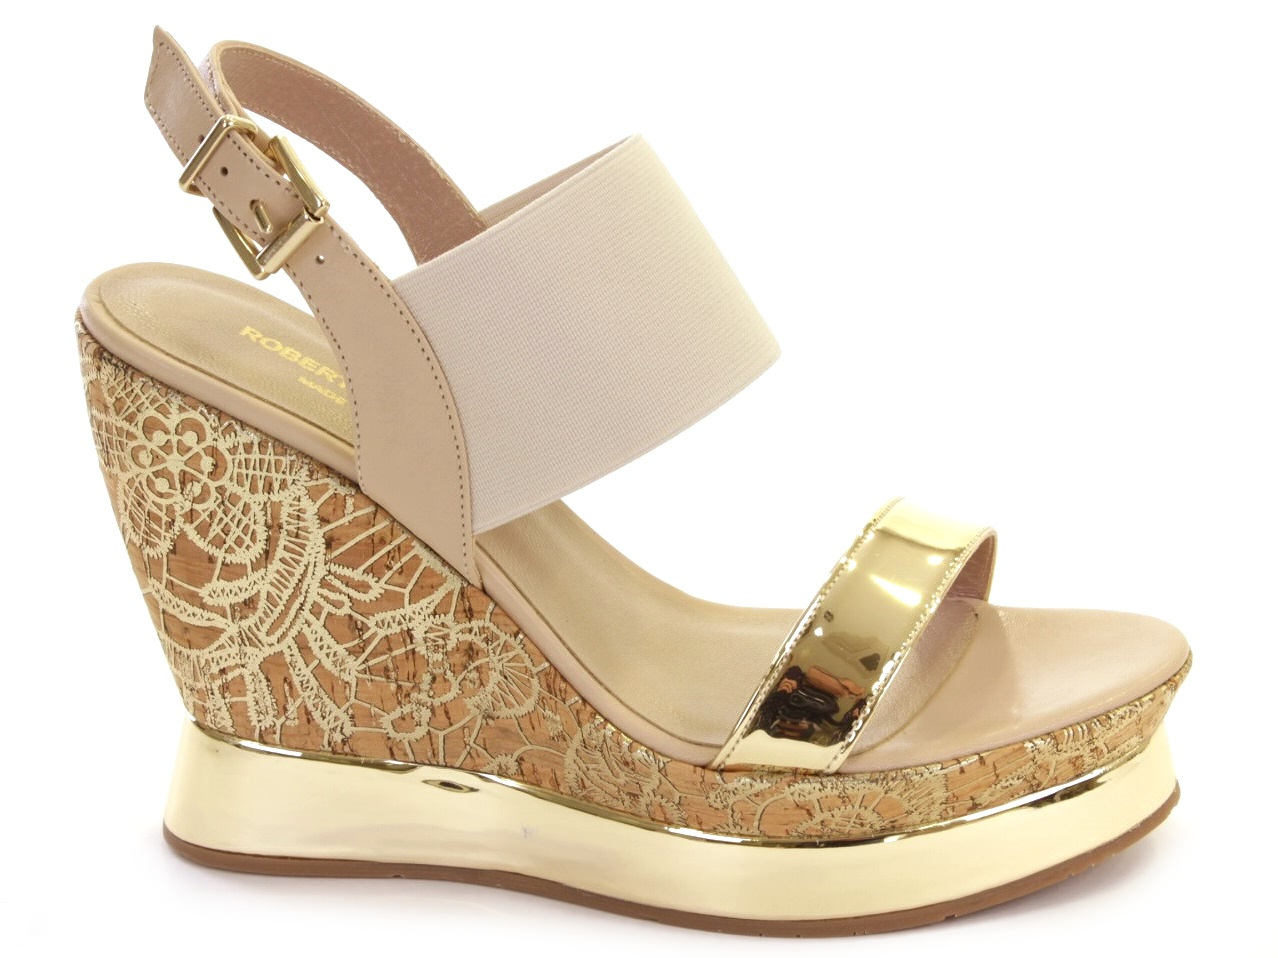 Wedge Sandals Roberto Botella - 387 MM17011